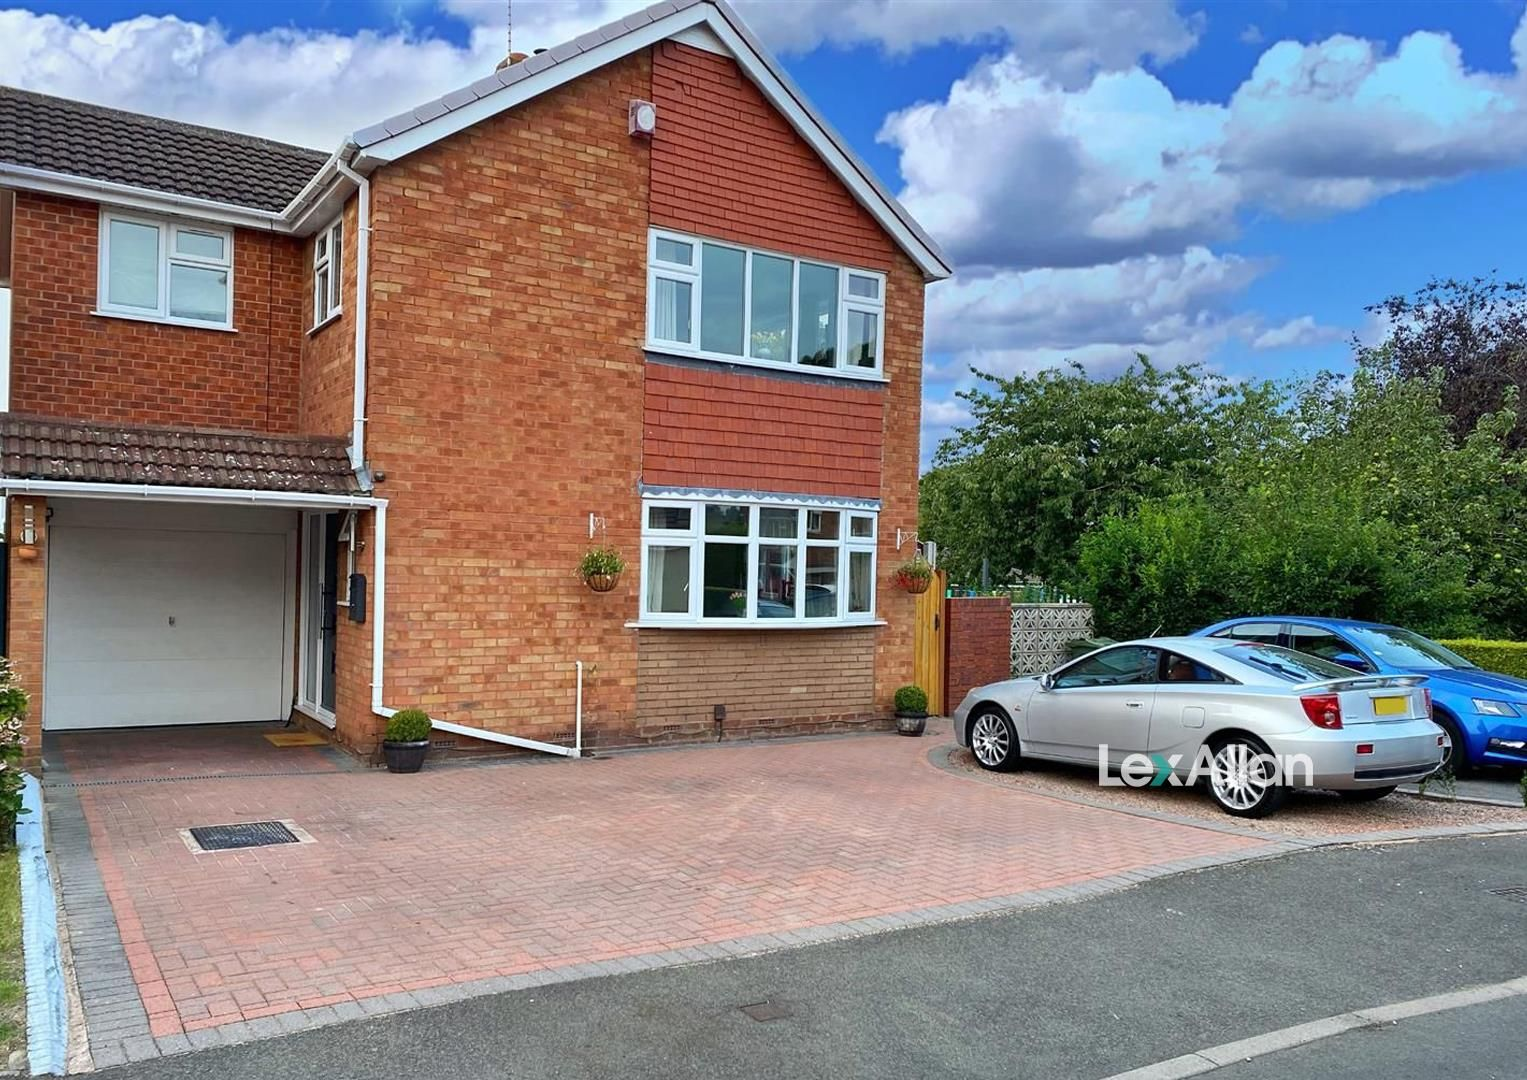 4 bed detached for sale in Oldswinford, DY8